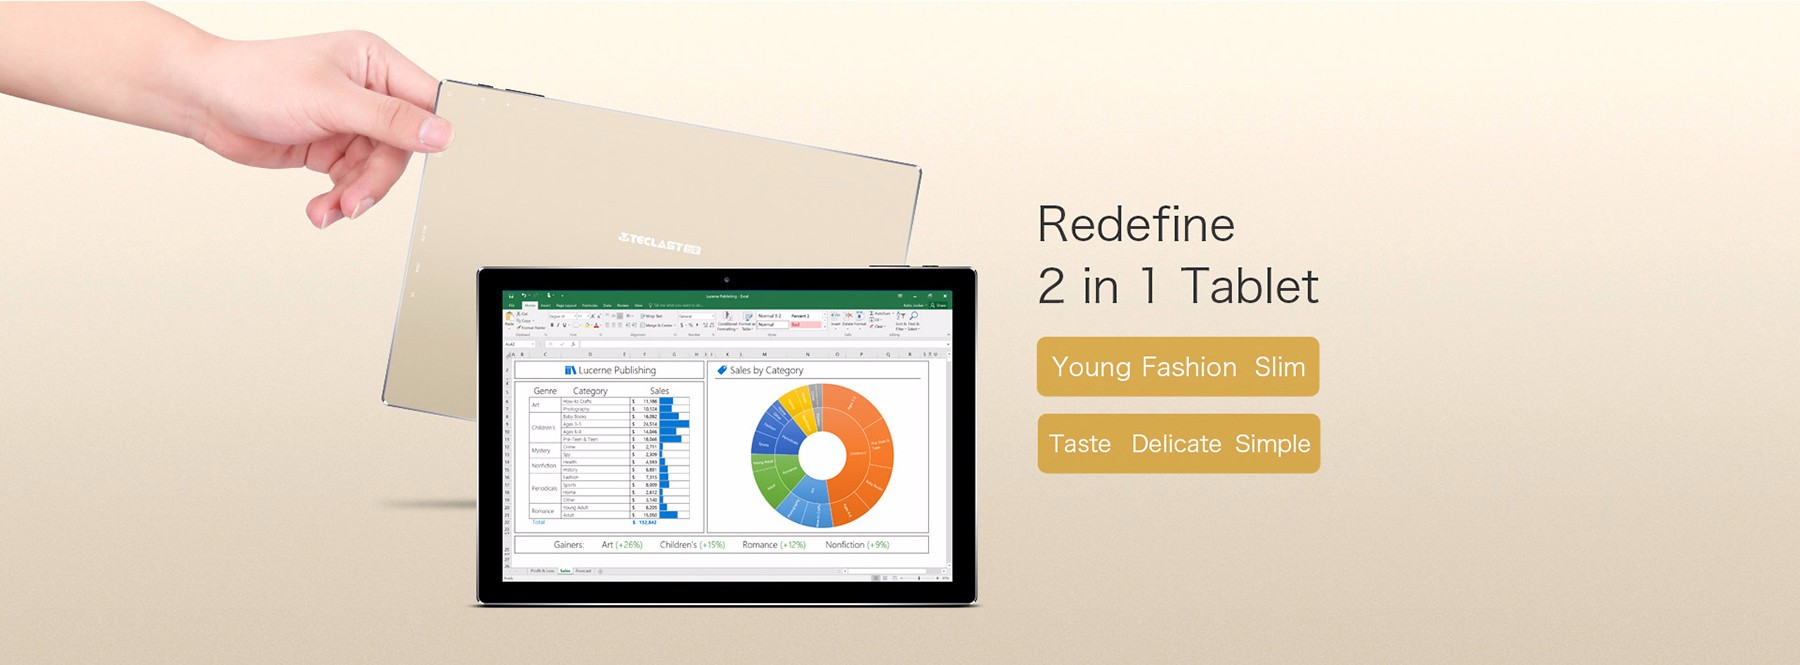 Teclast réper 10 S 2 en 1 Tablet PC 10.1 pouces de Windows 10 + Android 5.1 IPS Écran Intel Cerisier Trail X5 Z8350 64bit Quad Core 1.44GHz 4GB RAM 64GB ROM Bluetooth 4.0